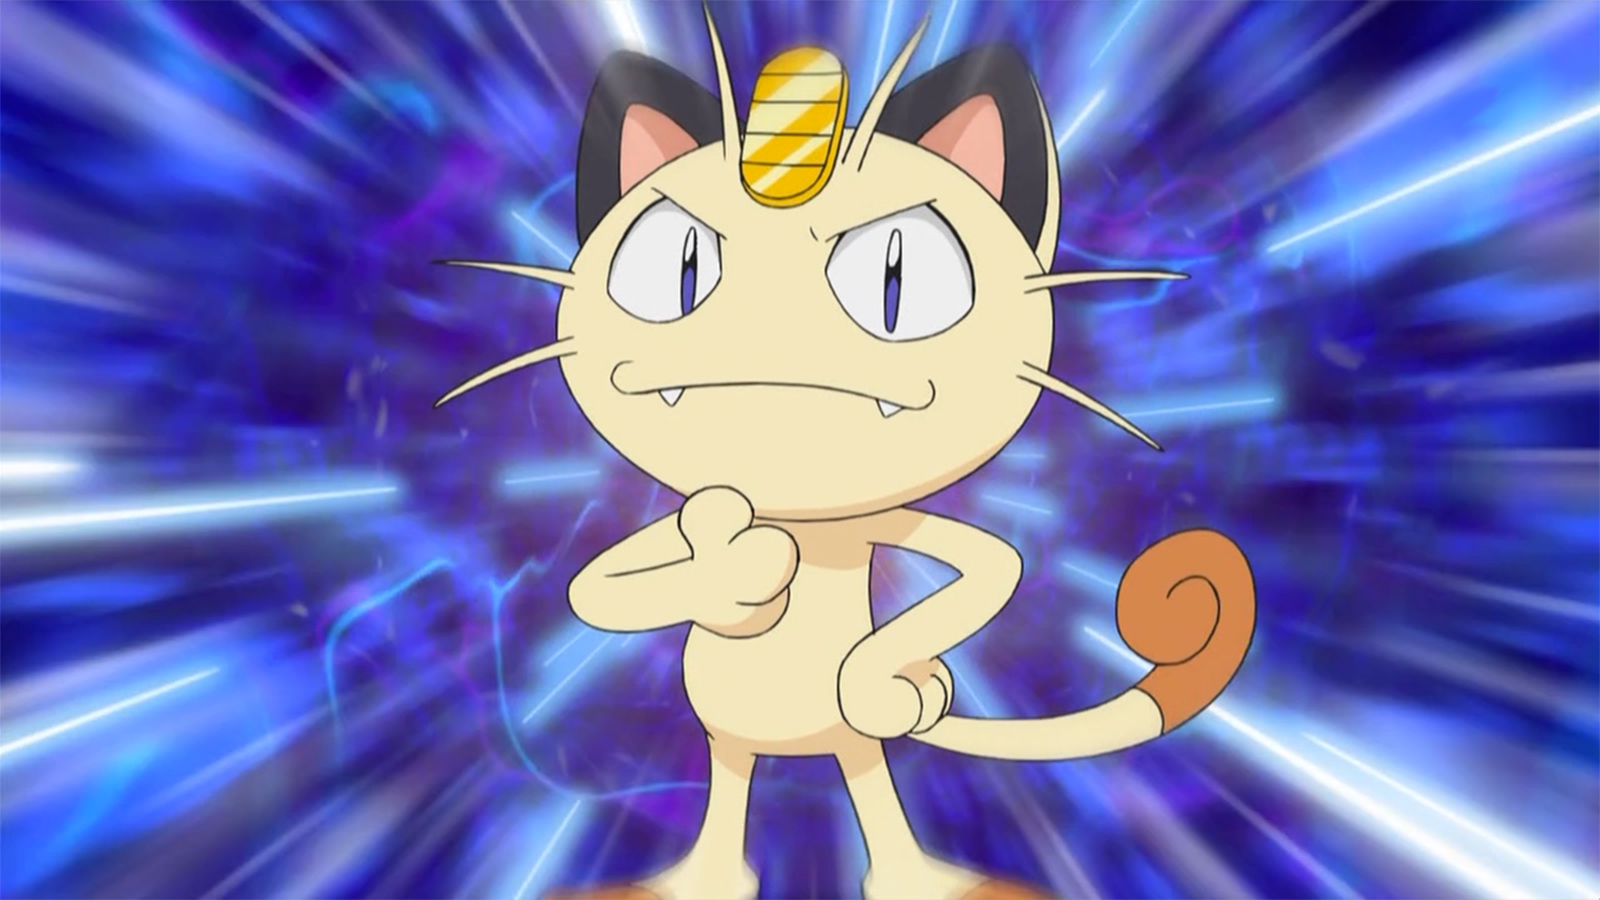 Meowth in Pokemon